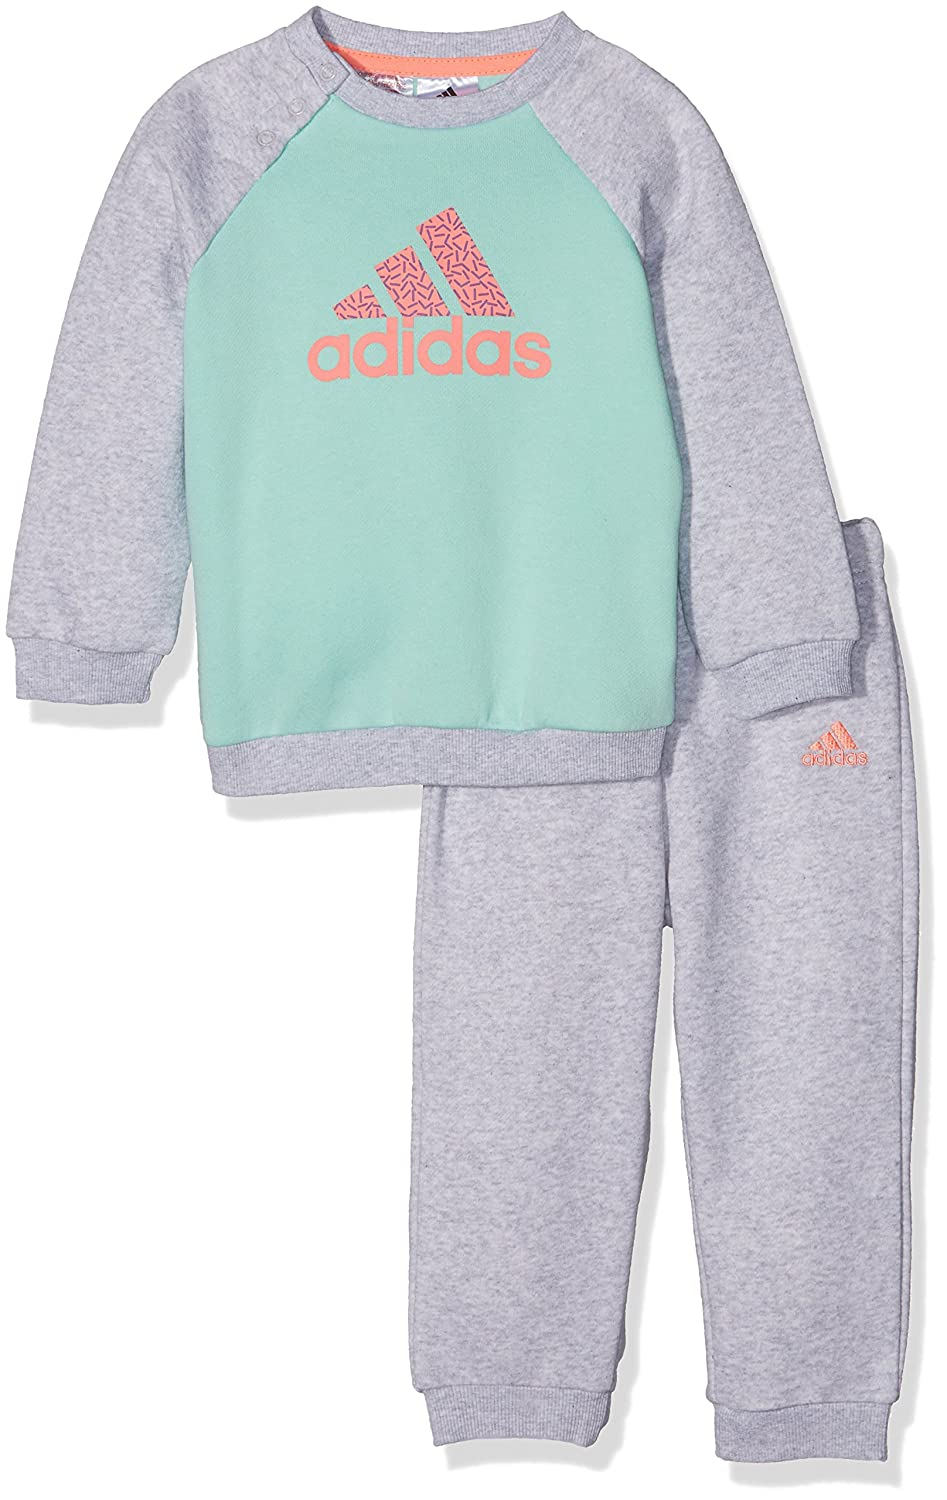 adidas I SP LOG JOGGER Outfit for Children